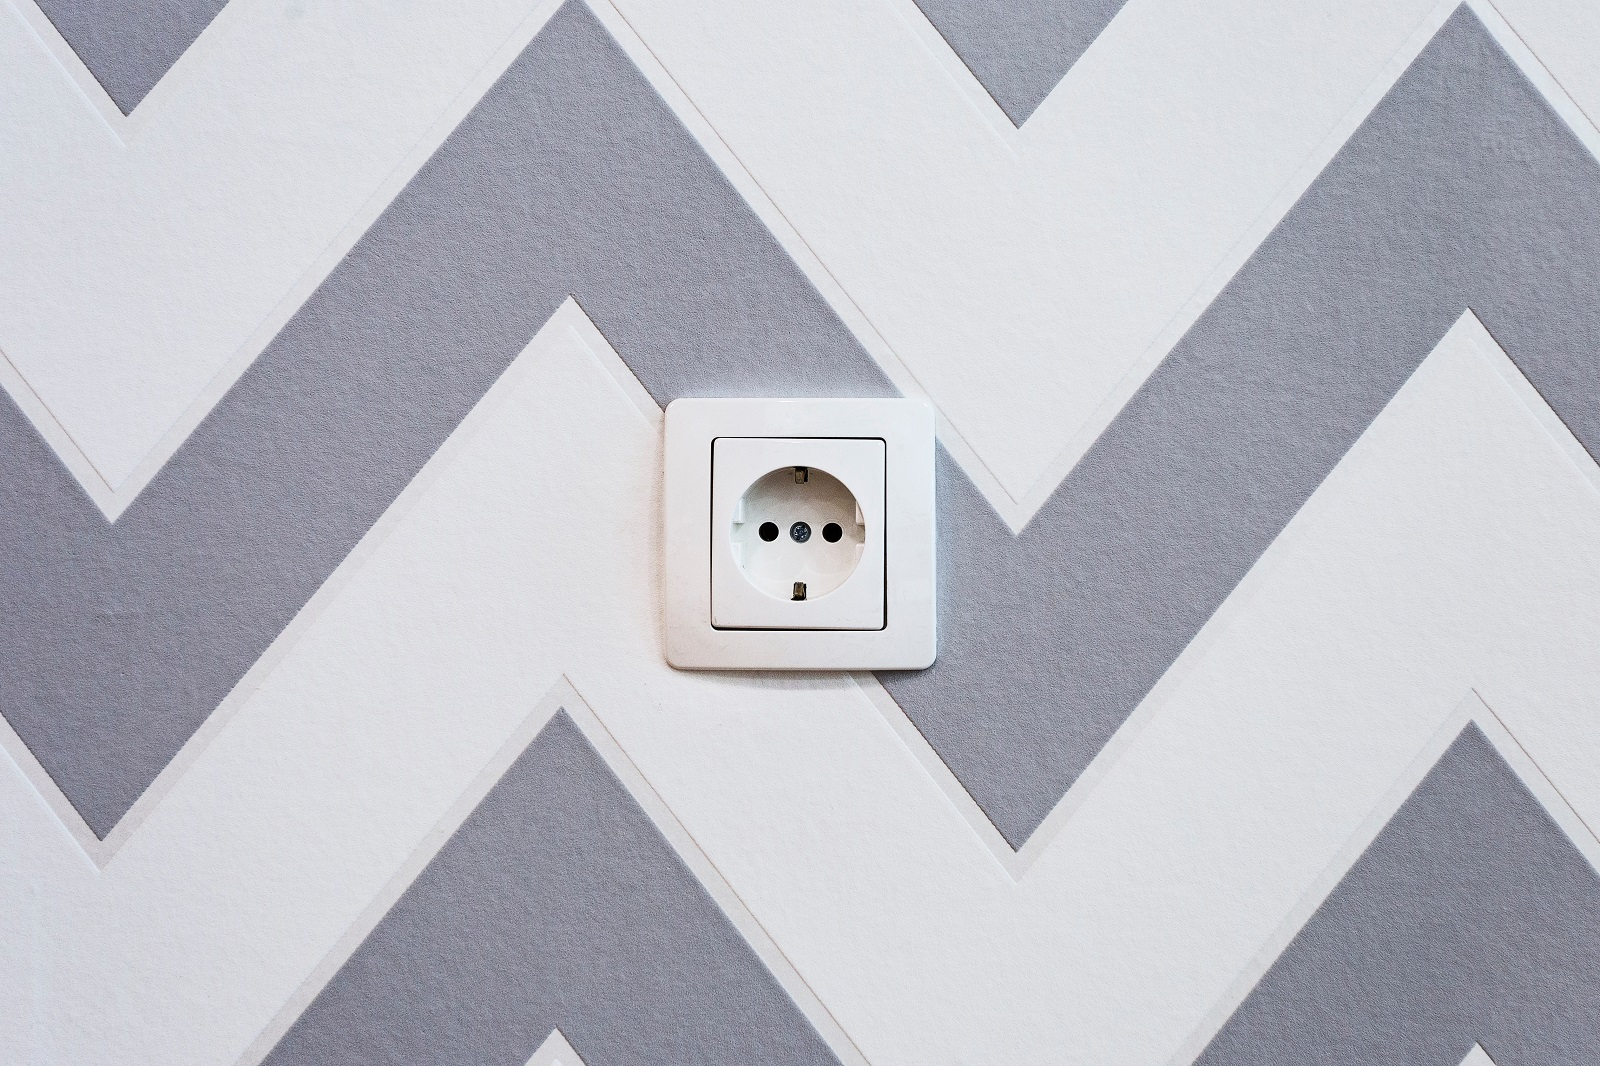 A photo of a European power outlet